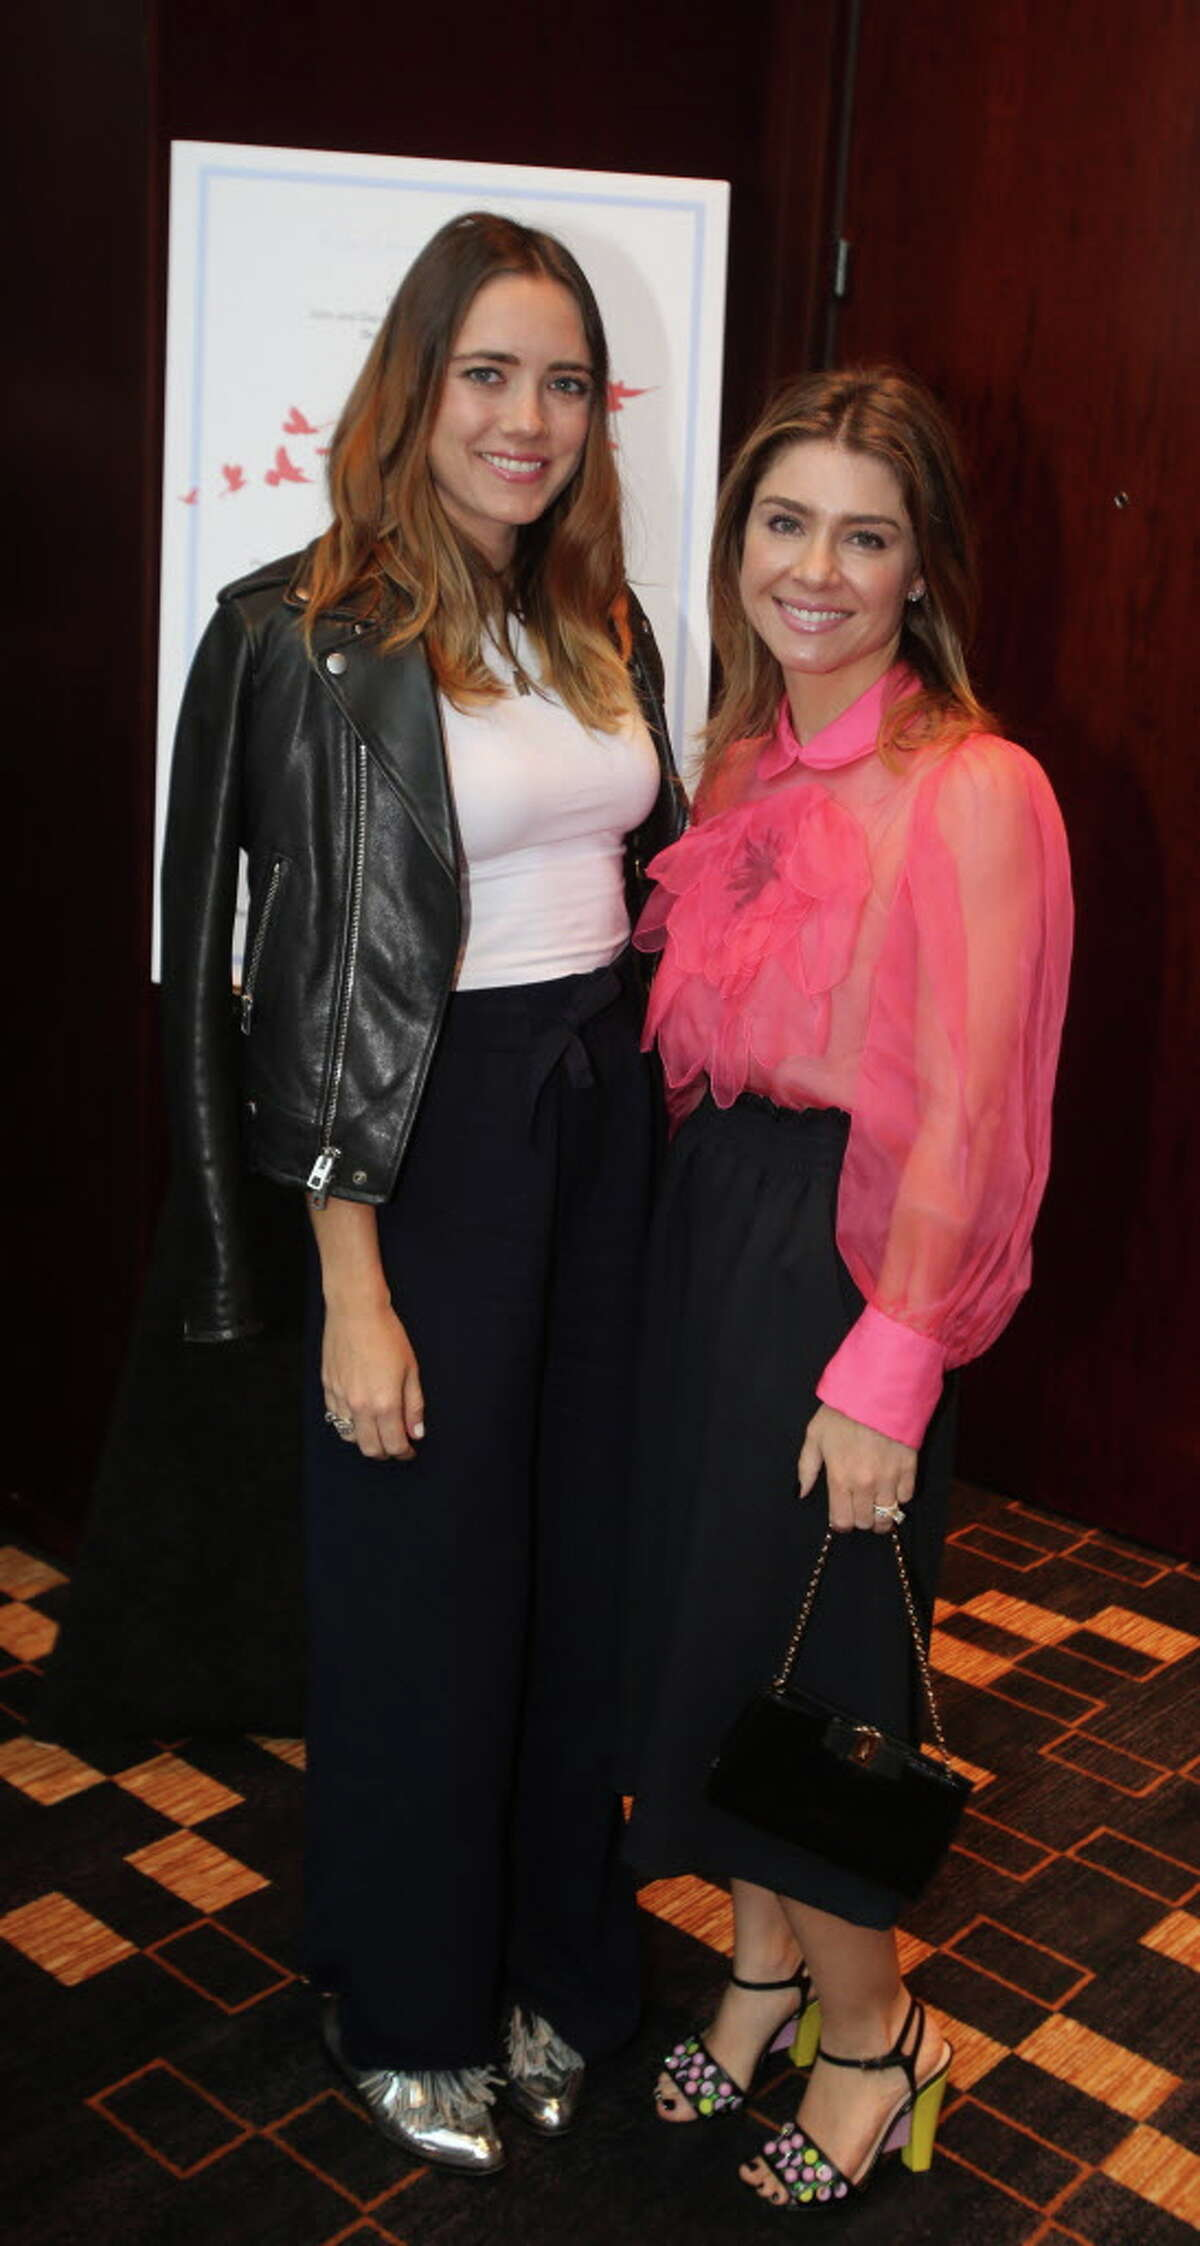 Skye Truax and Rachael Volz at the inaugural Triumph Luncheon benefiting The Women's Home.